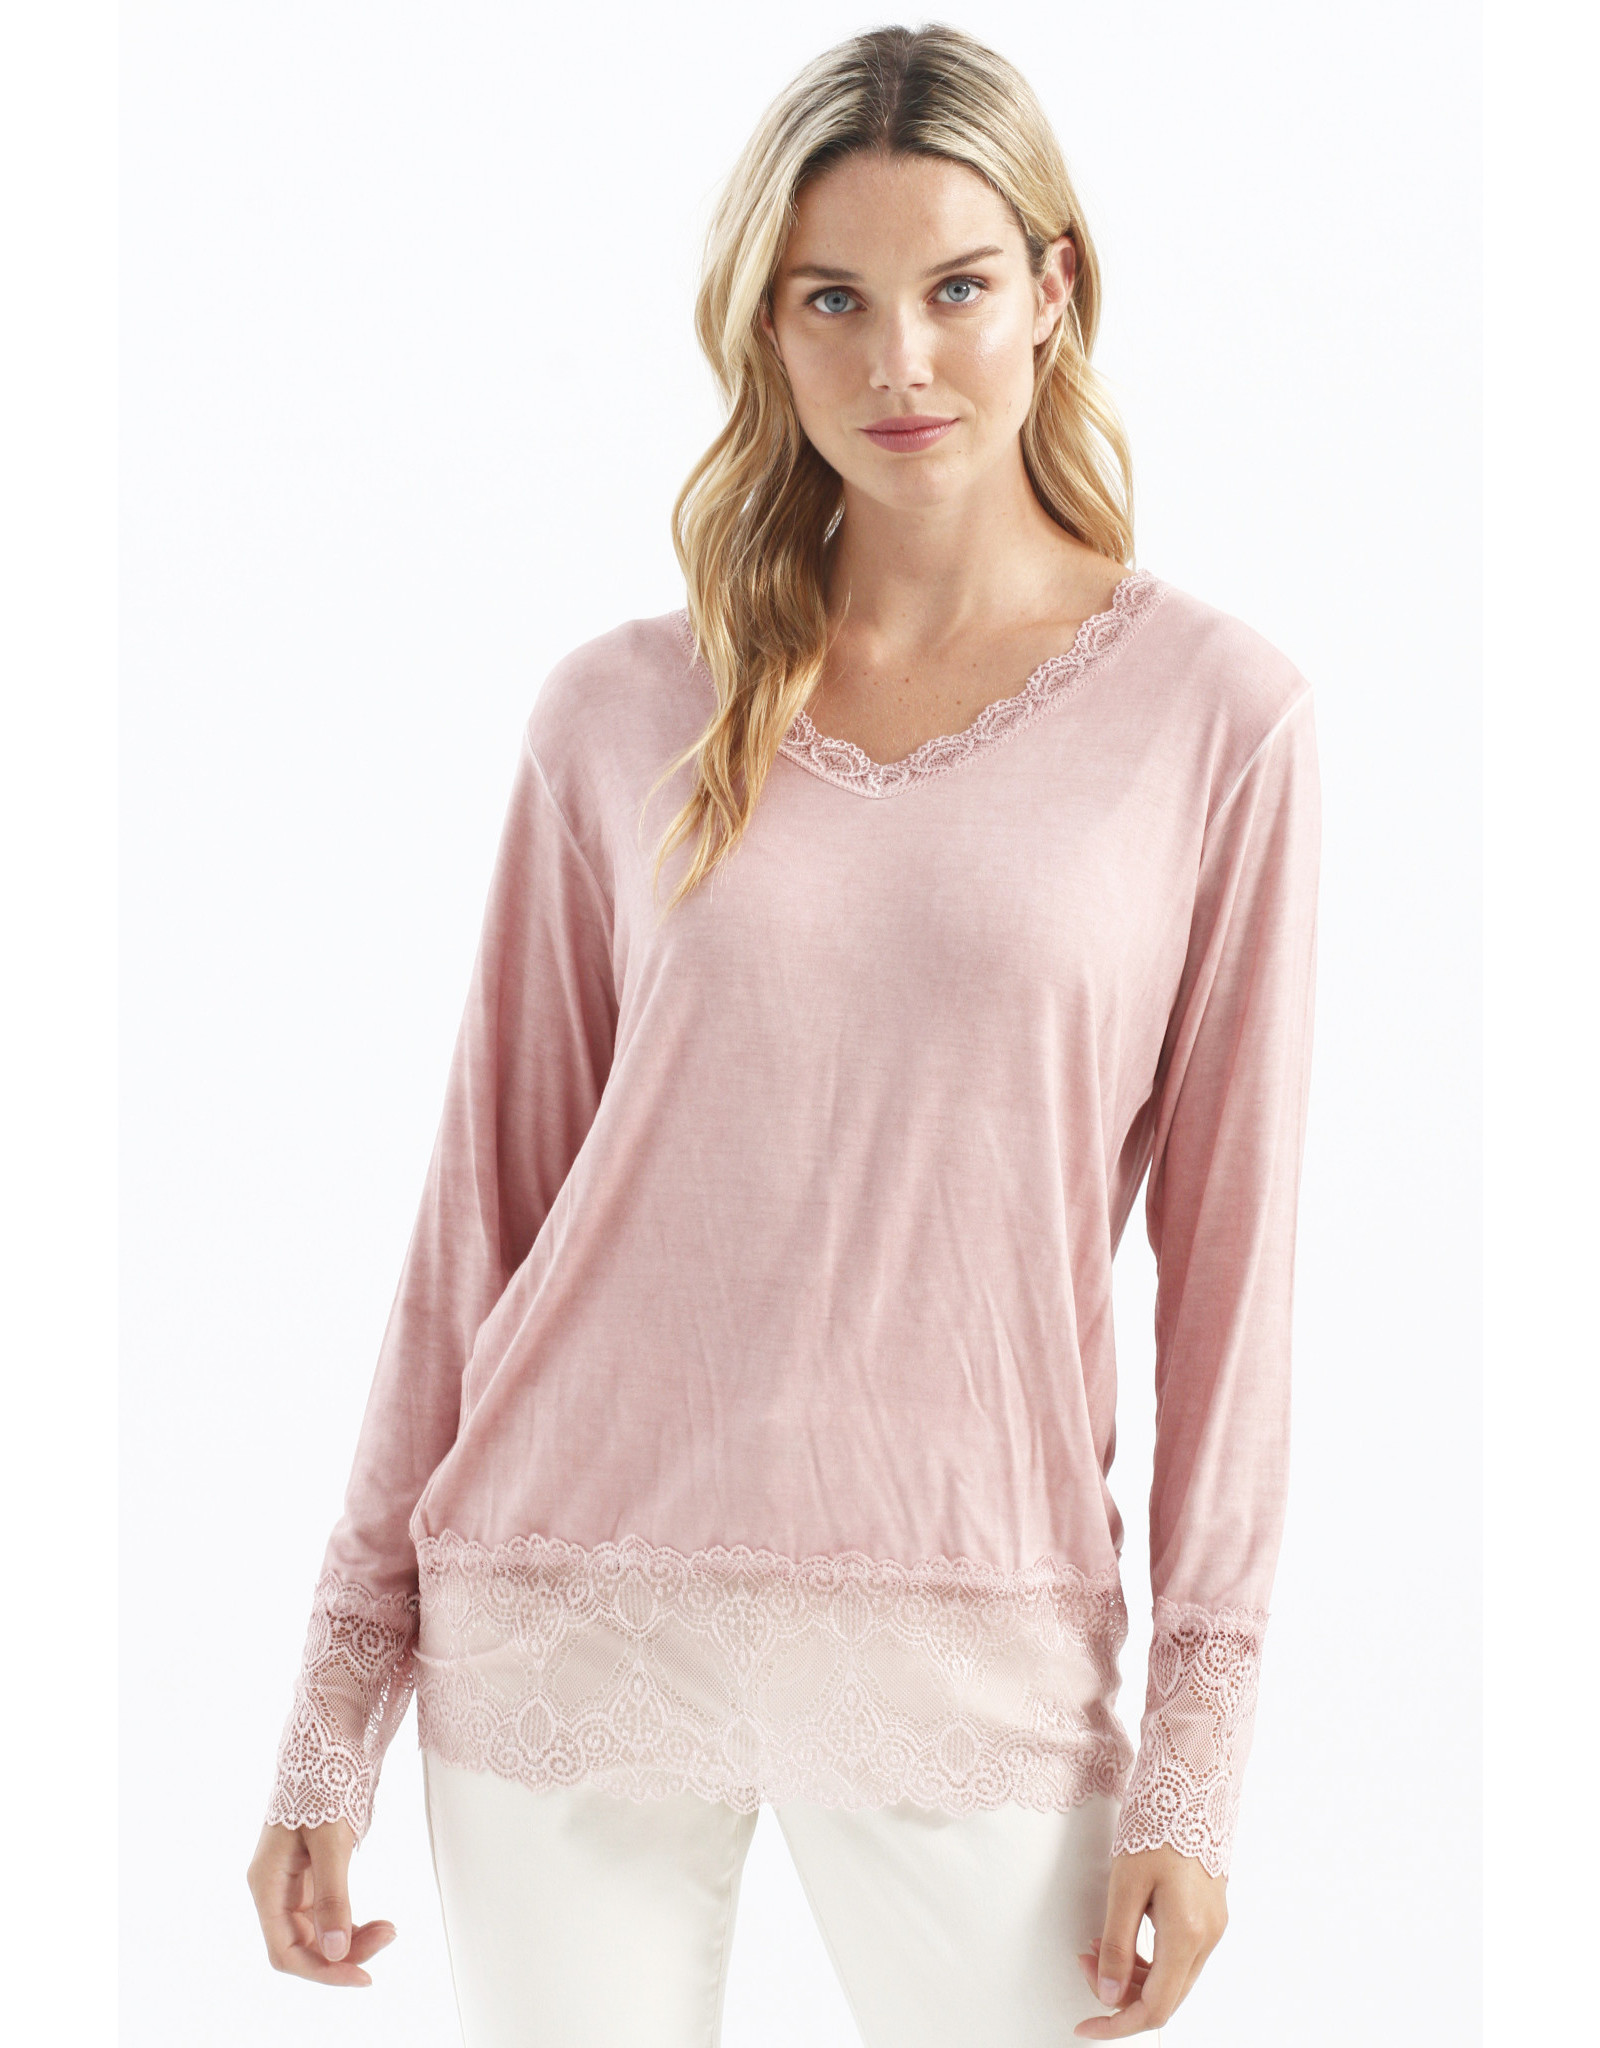 Charlie B Pullover Top with Lace Trim